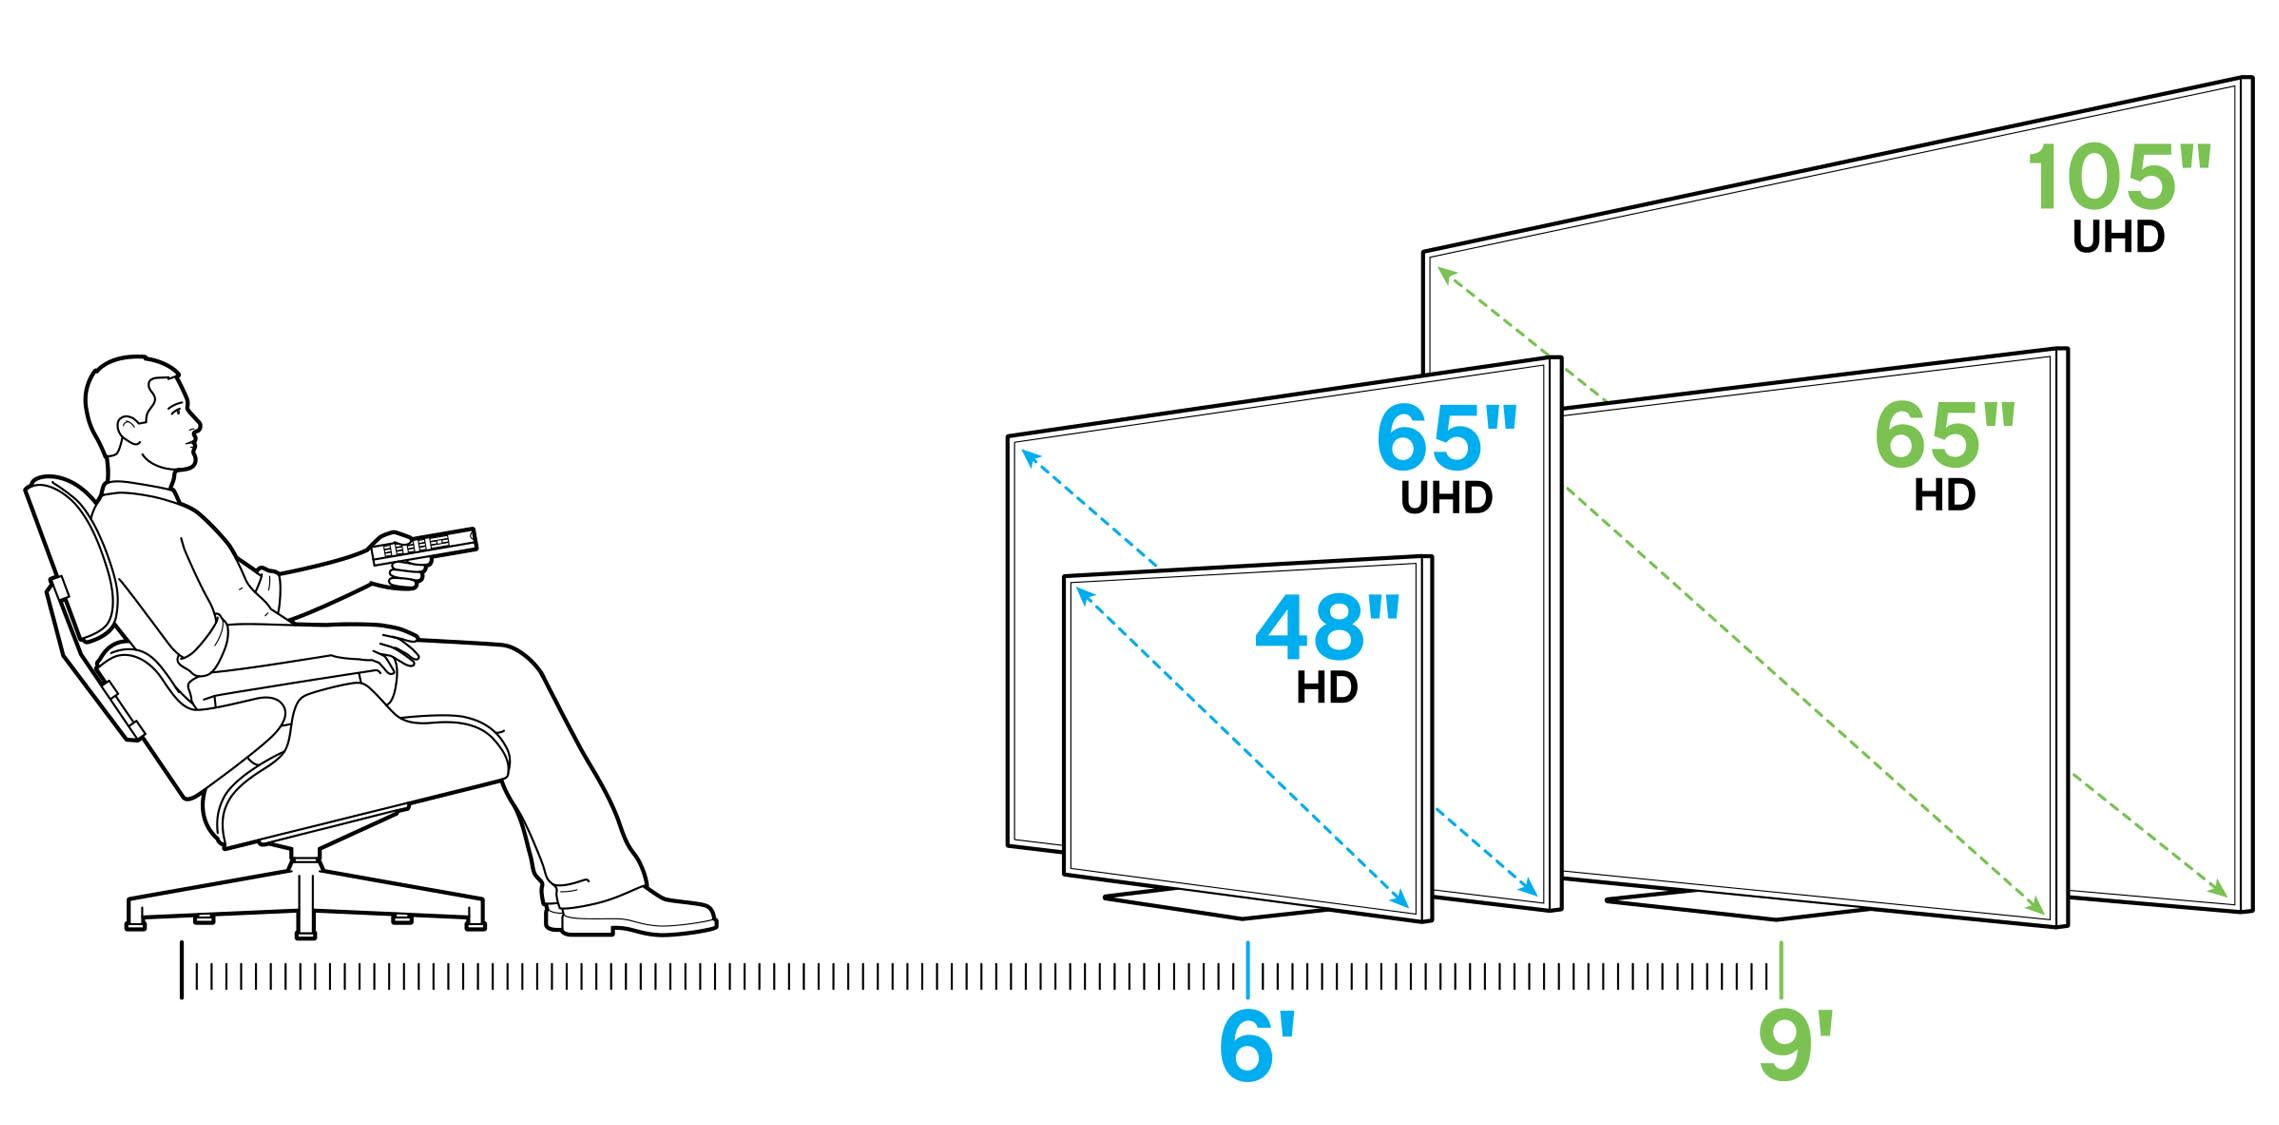 A 1080p and UHD TV size based on 6- and 9-foot viewing distances.